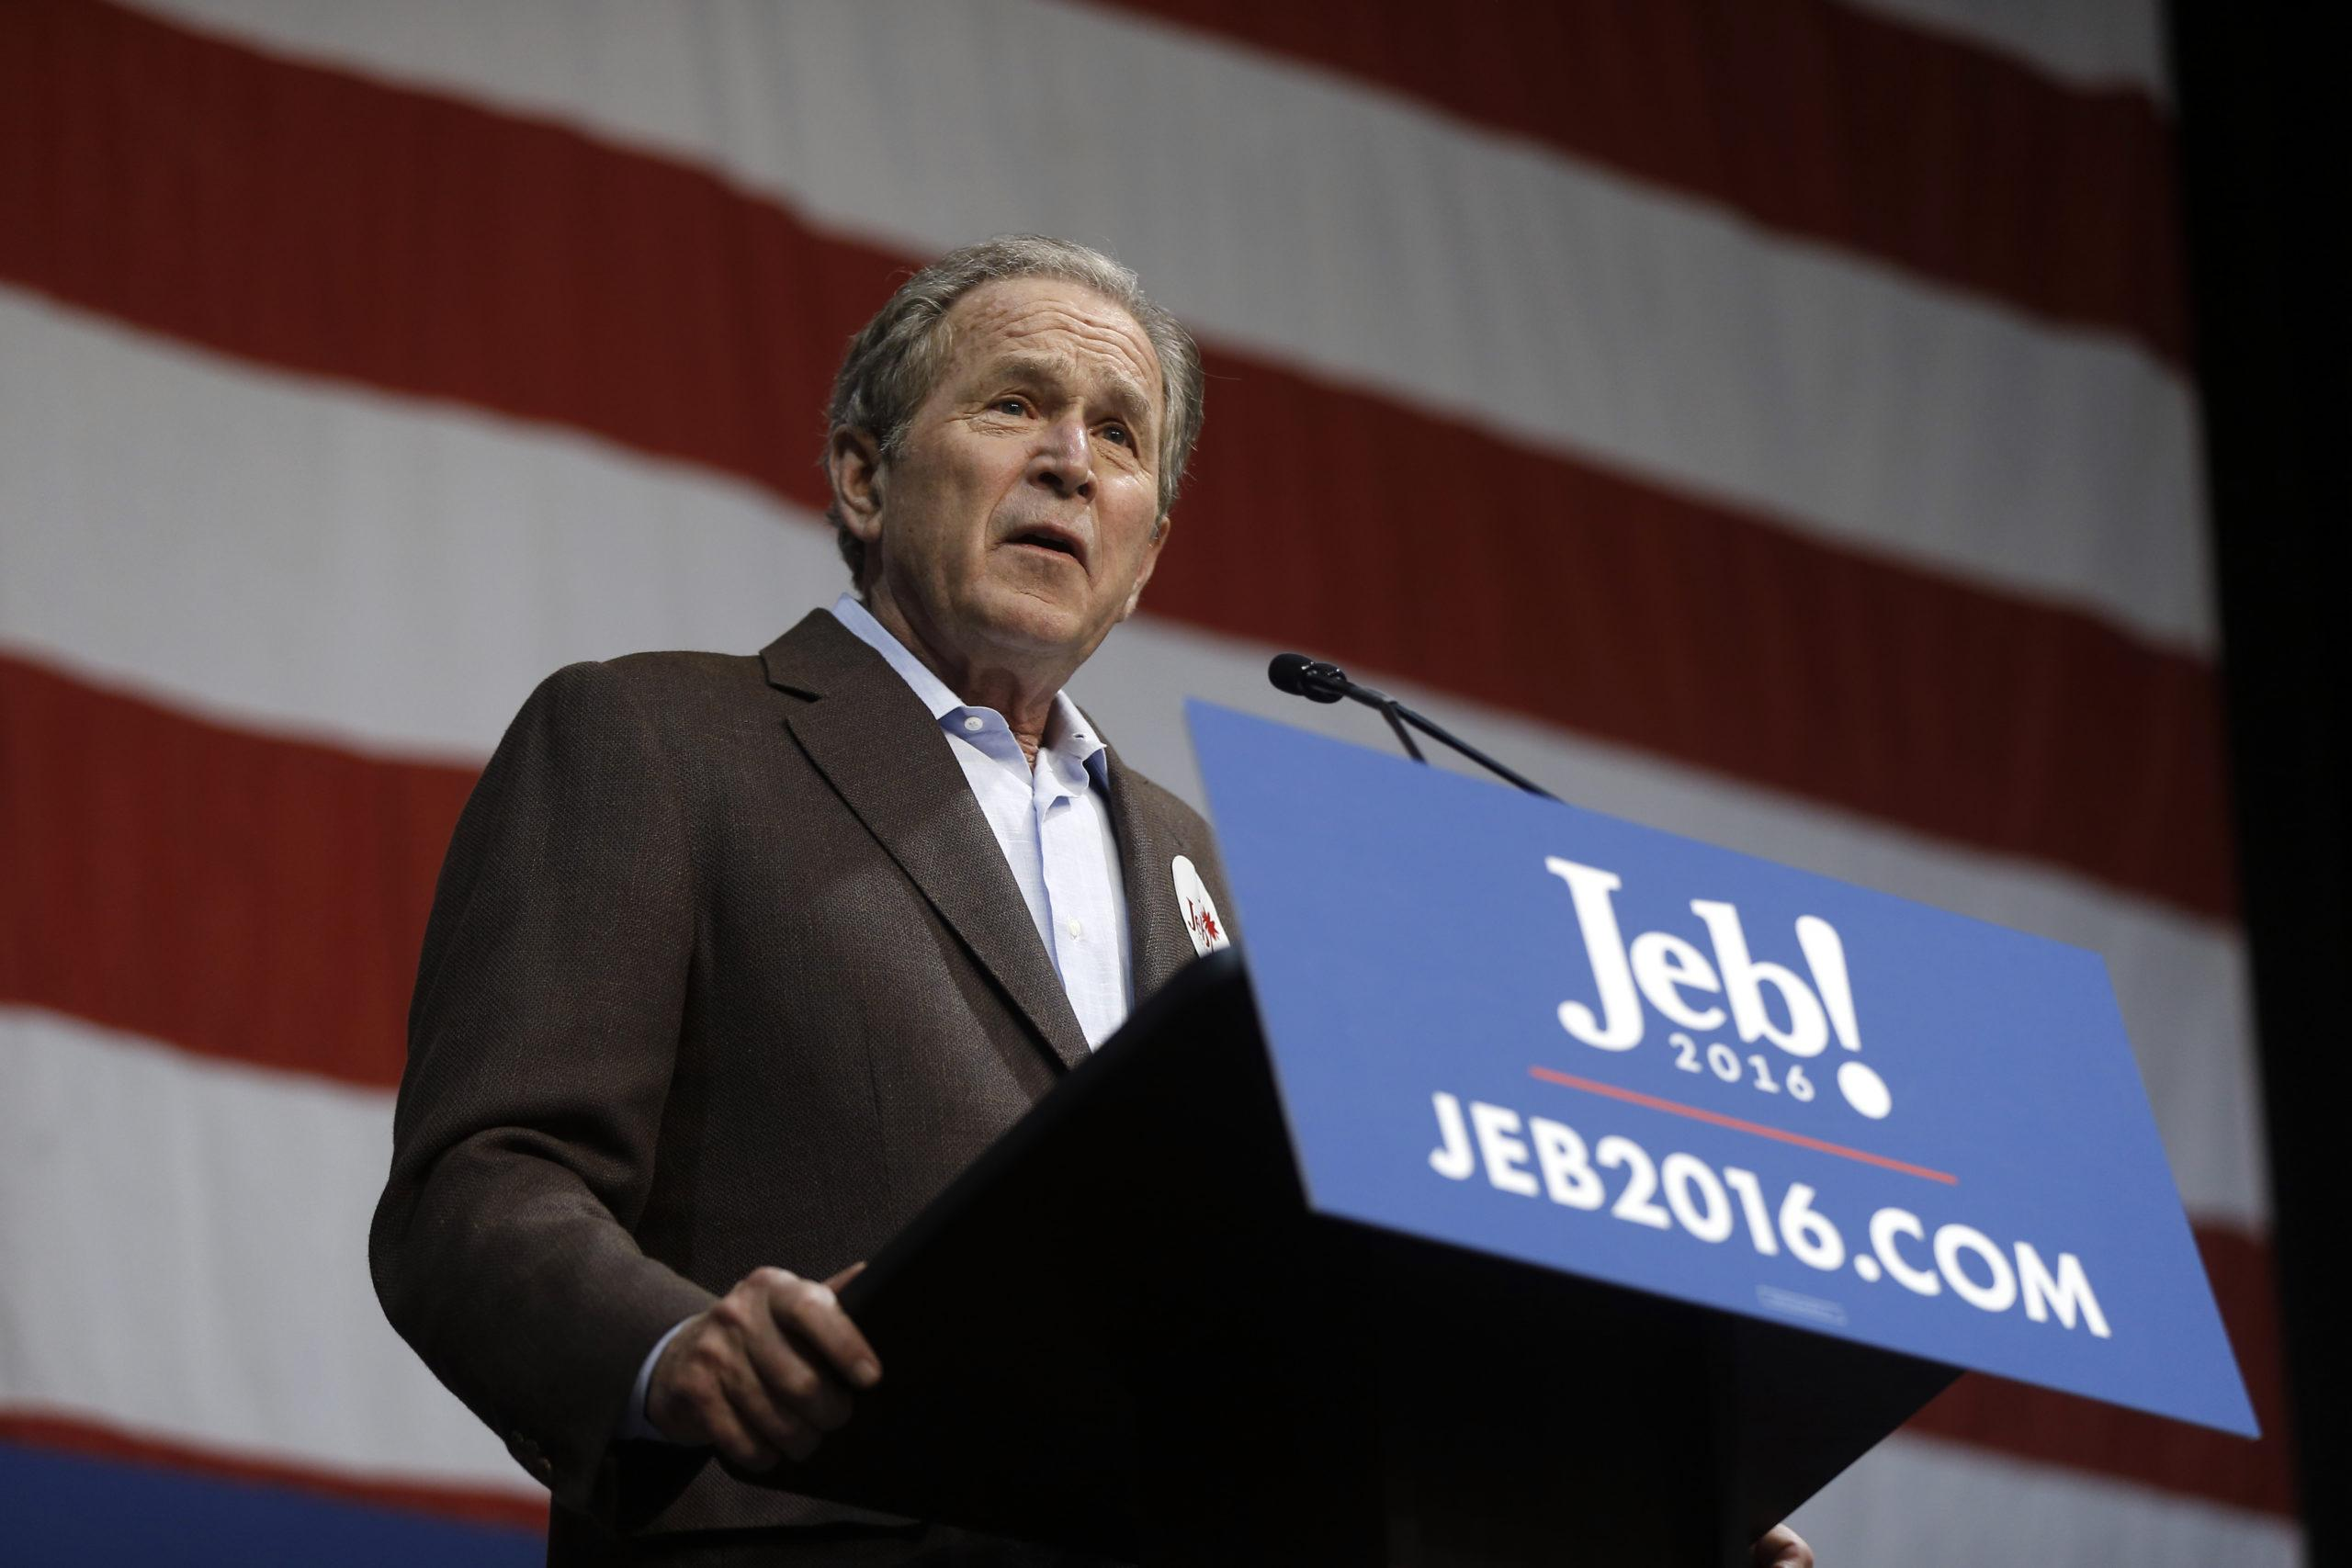 Former President George W. Bush campaigns for his brother Republican presidential candidate, former Florida Gov. Jeb Bush on Feb. 15 in South Carolina. Jeb Bush suspended his presidential campaign this weekend.